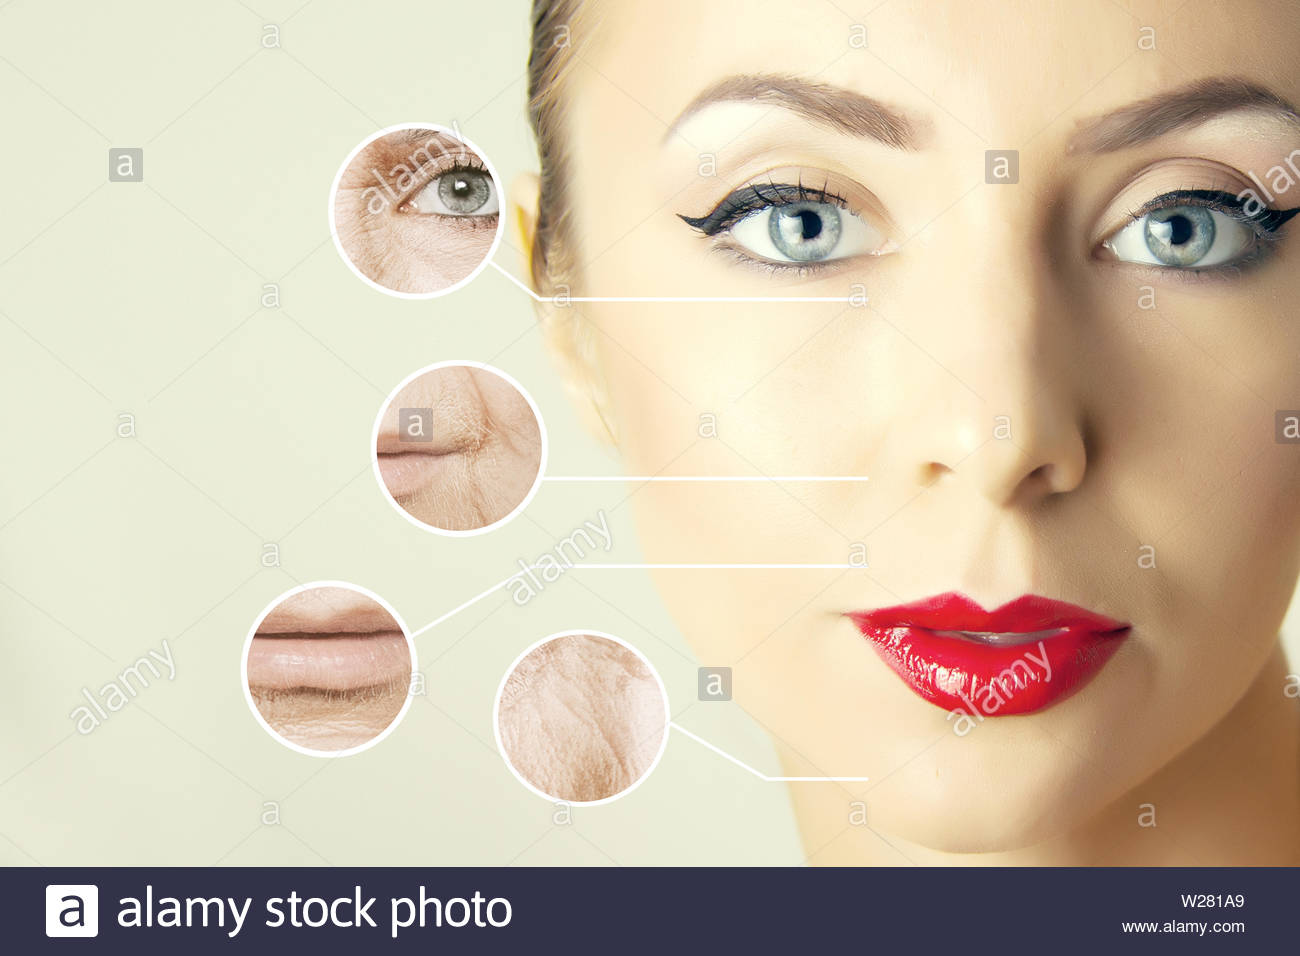 aging problems  of face skin, close-up portrait with wrinkles - Stock Image